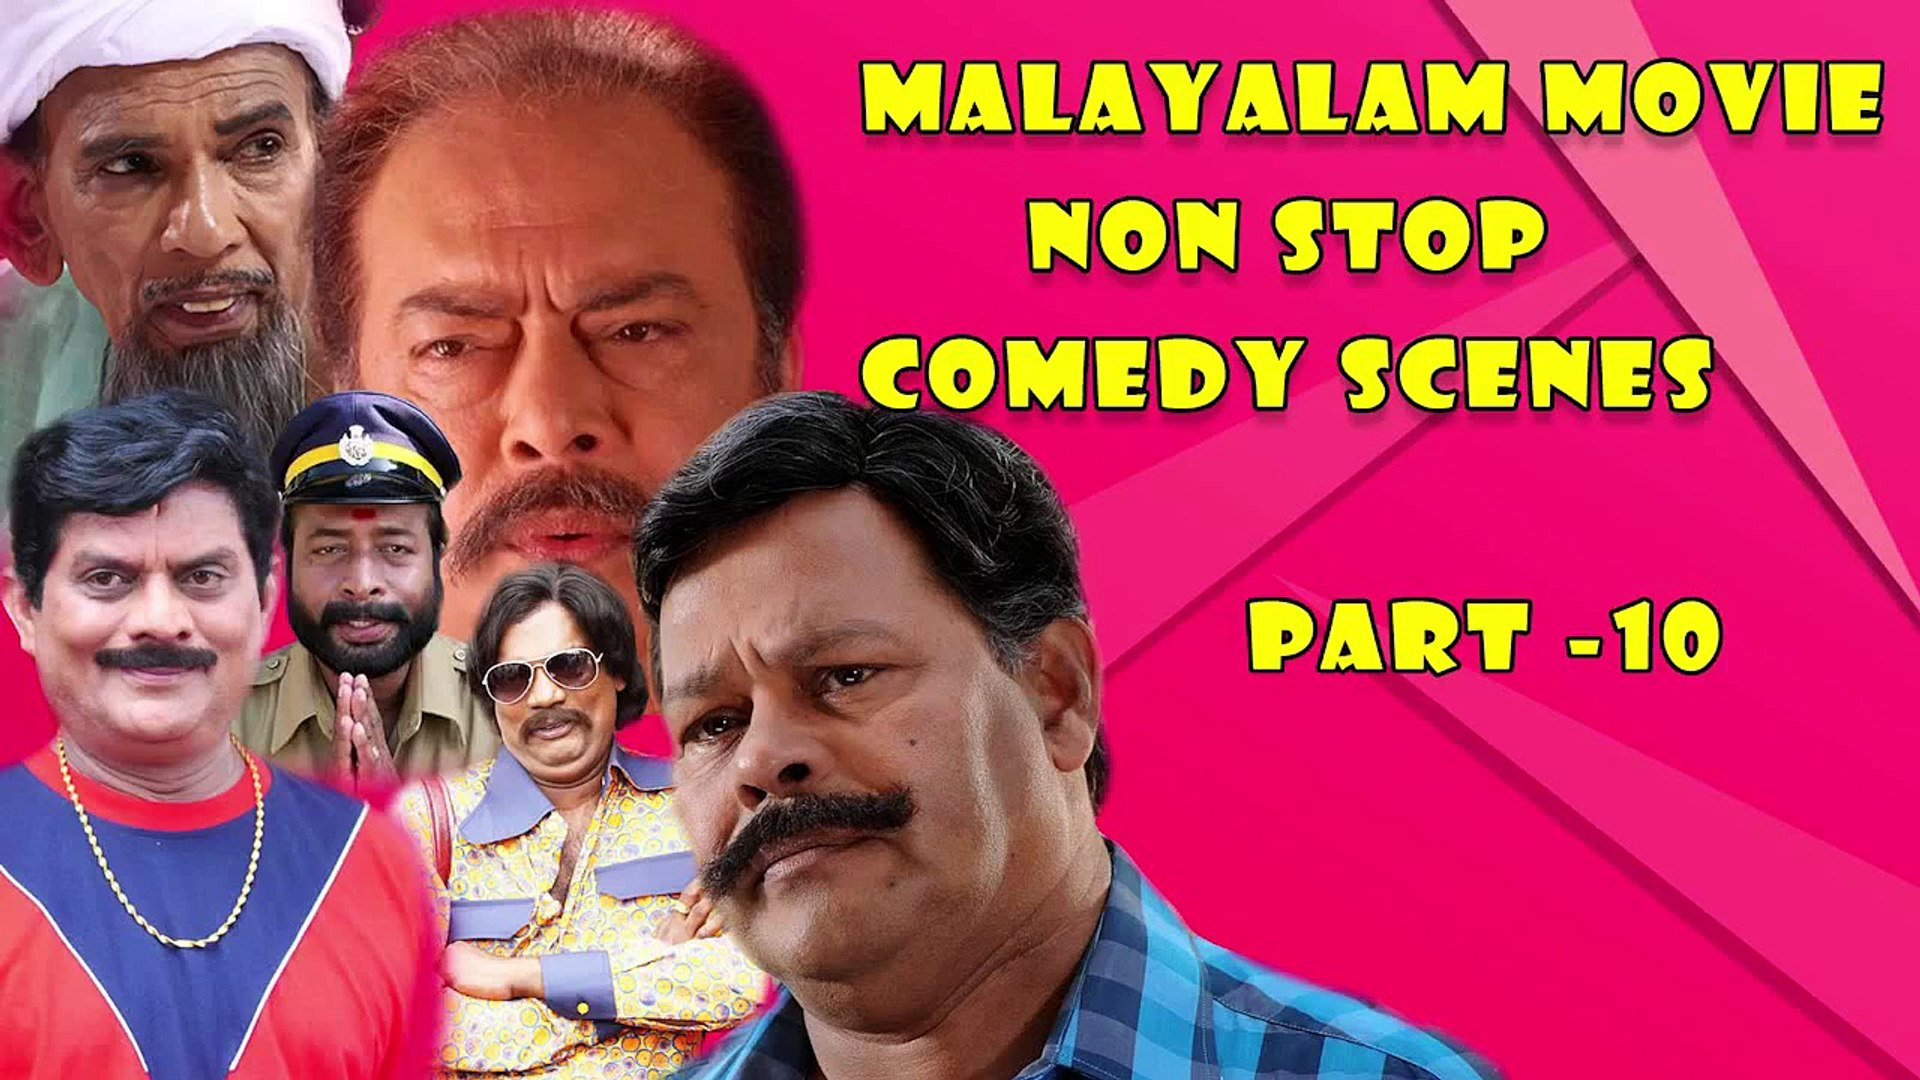 Malayalam Movie Non Stop Comedy Scenes 10 | Malayalam Comedy Scenes | Malayalam Movie Come